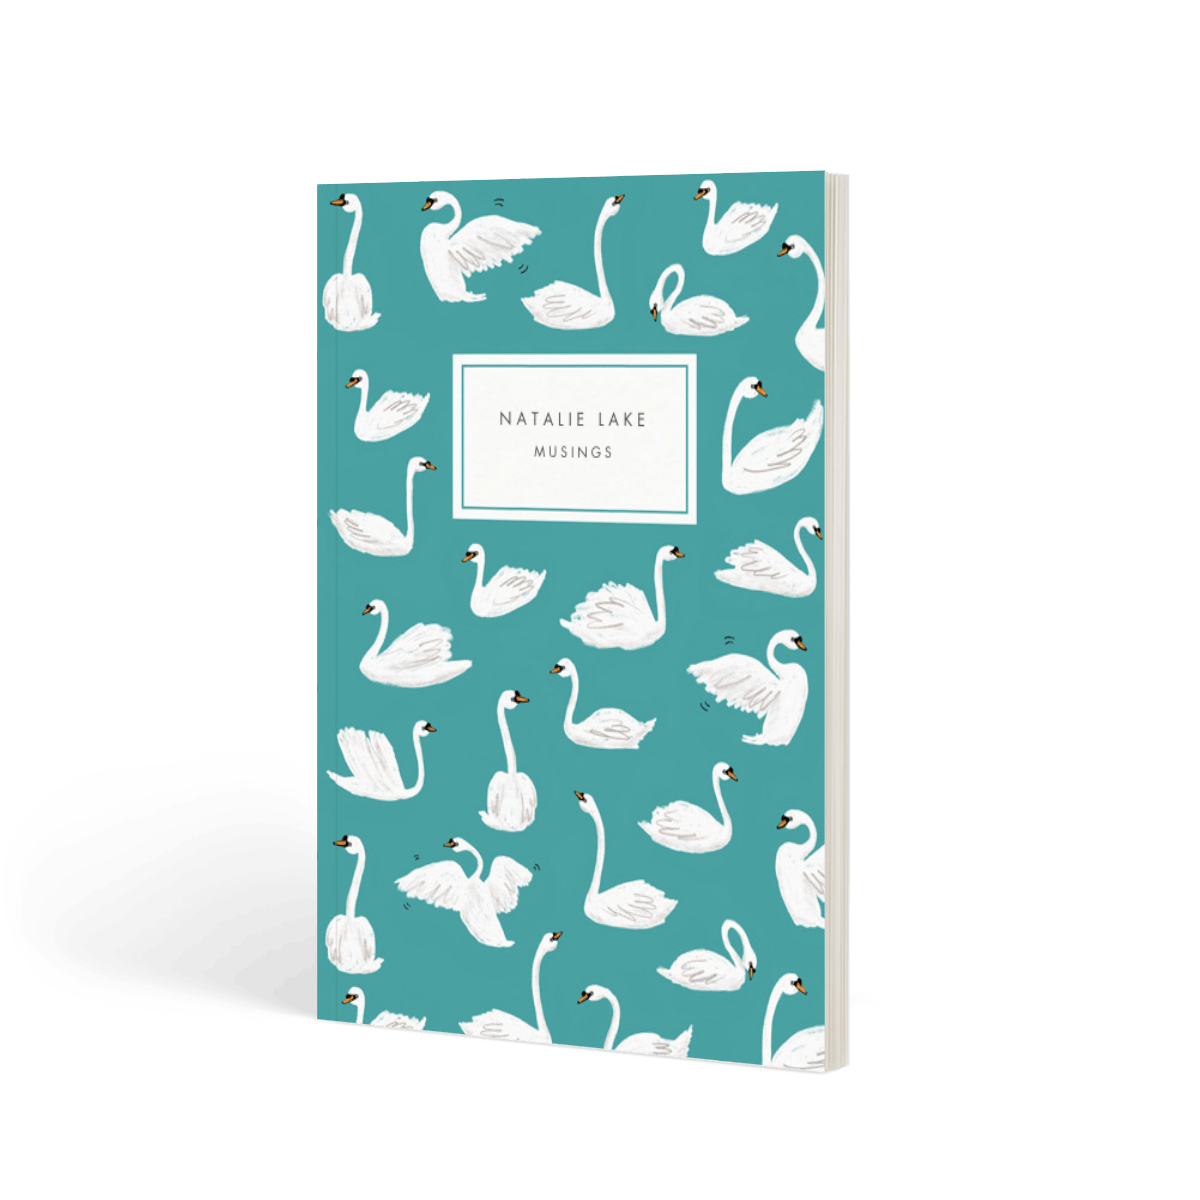 Https%3a%2f%2fwww.papier.com%2fproduct image%2f57152%2f6%2fblue swans 13726 front 1542370461.png?ixlib=rb 1.1